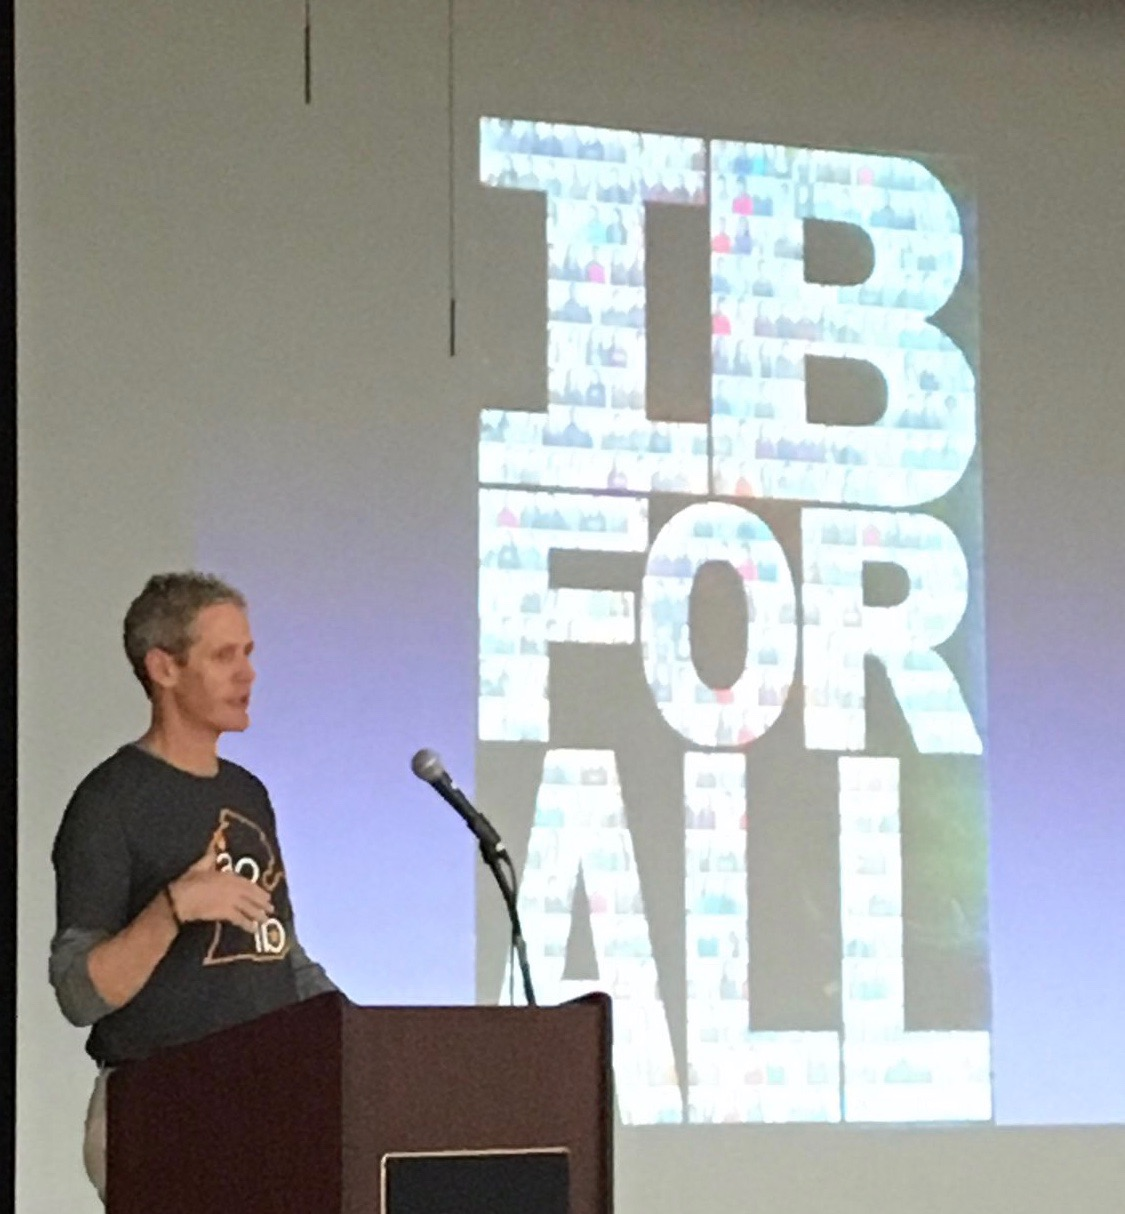 Kevin Karr stands at a podium with the screen behind saying IB For ALL